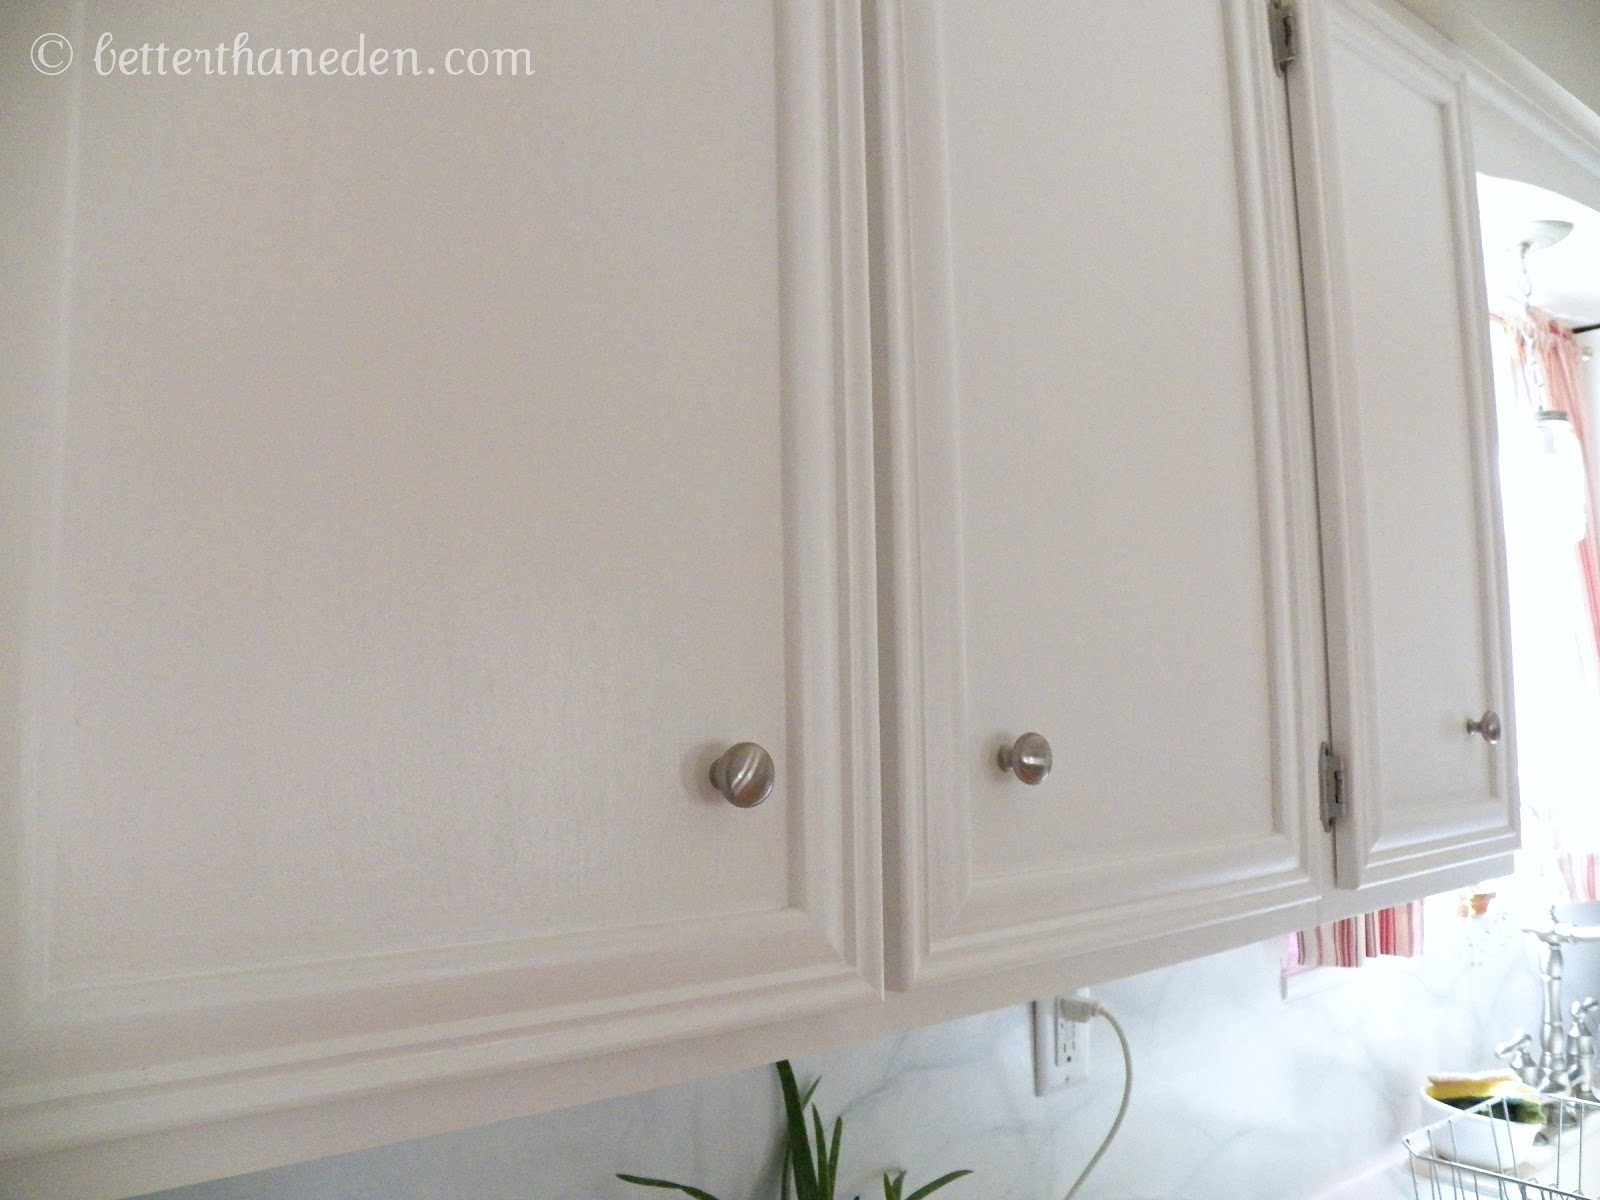 Painting kitchen cabinets polyurethane finish - I Ended Up Using Two Coats Of Minwax Clear Polycrylic In A Matte Finish To Seal The Cabinets I Tried Polyurethane On My First Few And It Yellowed And